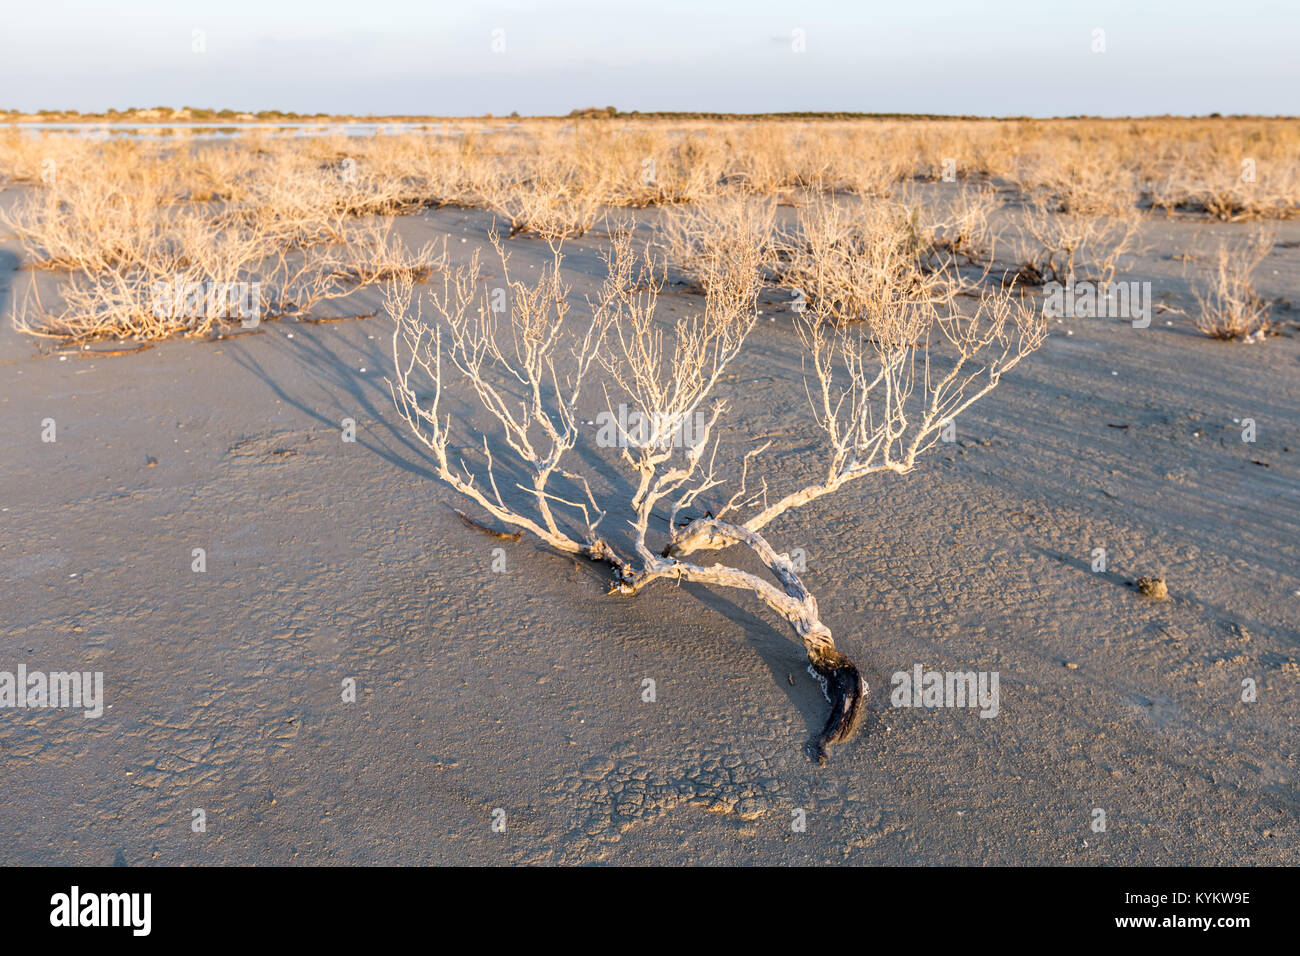 Dry old bushes and plant on beach with sea on the background with blue sky.dry bush on the sandy seashore - Stock Image